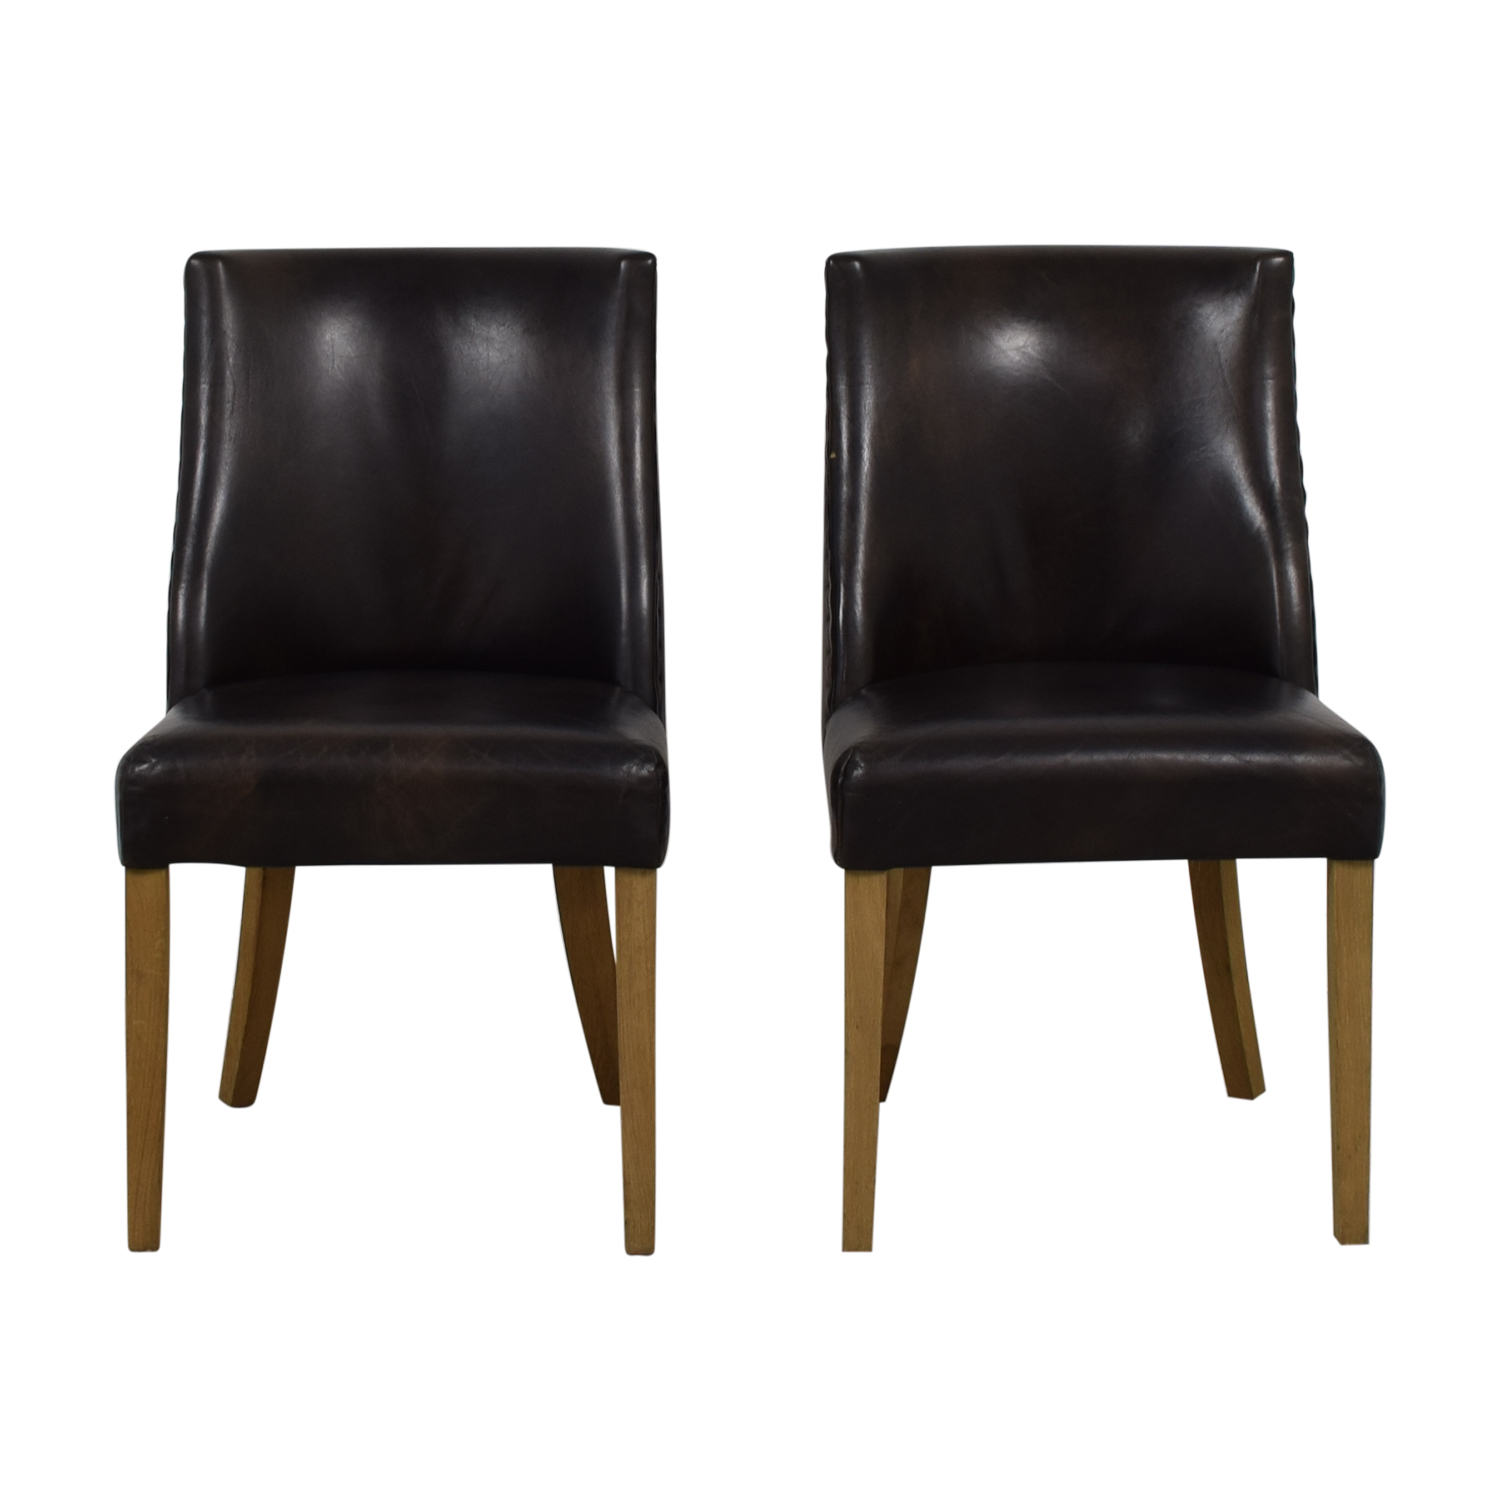 Restoration Hardware Brown Leather Dining Chairs